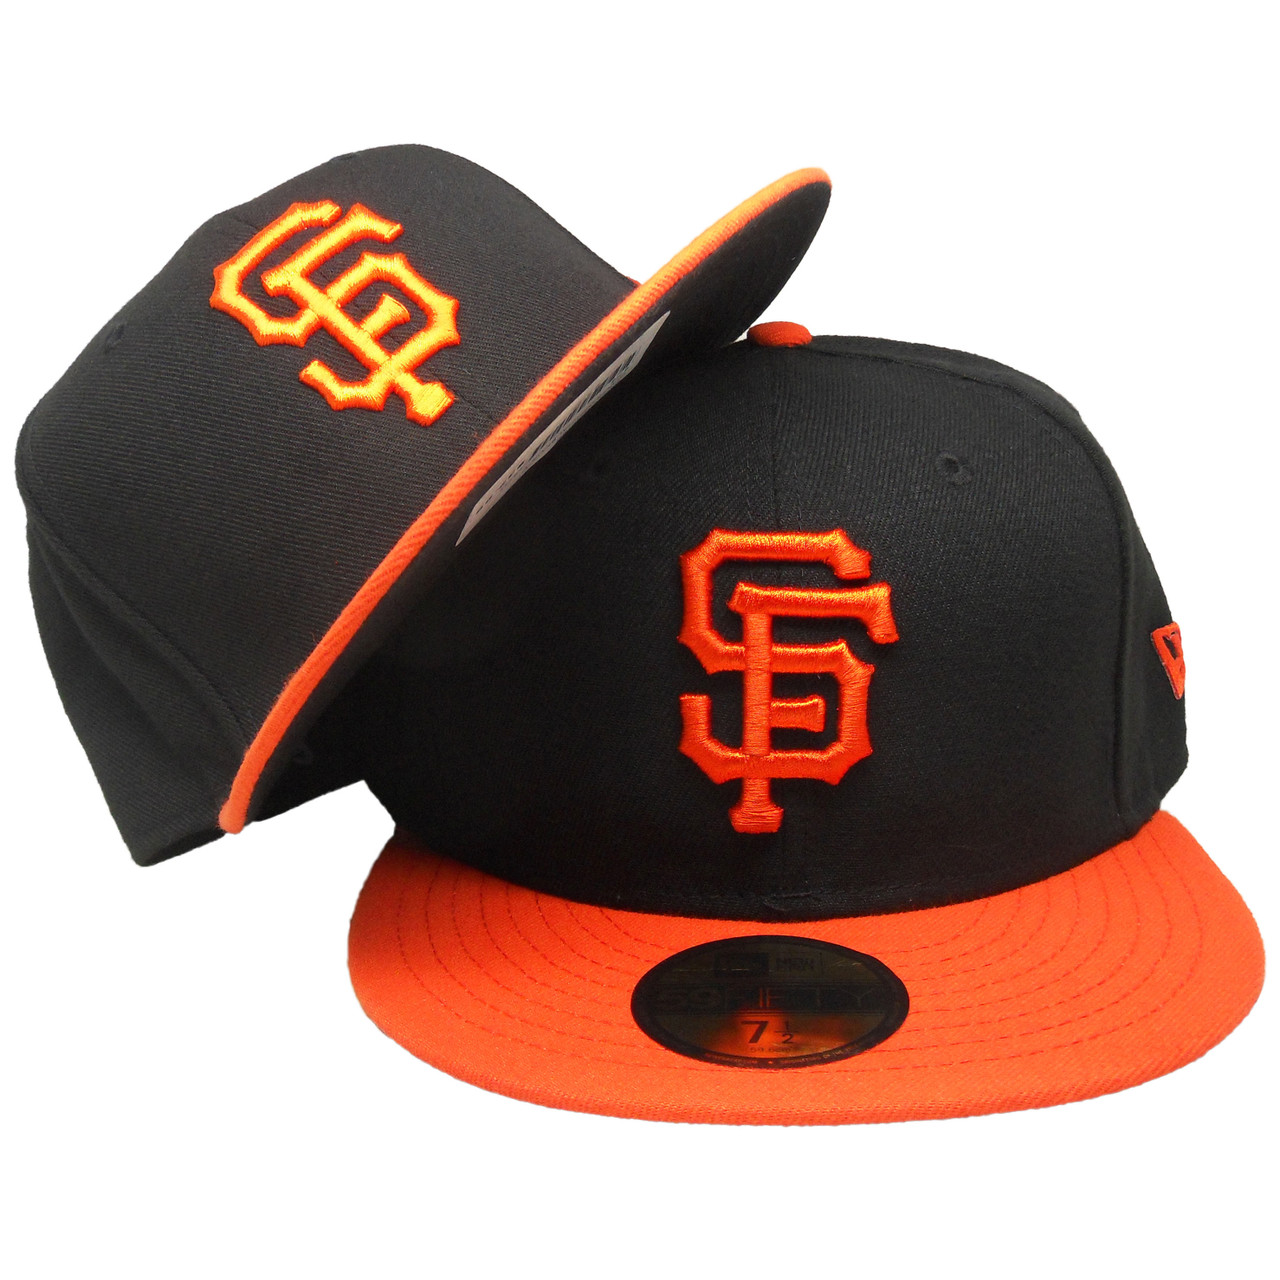 9db52de7ff0e67 San Francisco Giants New Era 59Fifty Alternate Fitted Hat - Black, Orange -  ECapsUnlimited.com